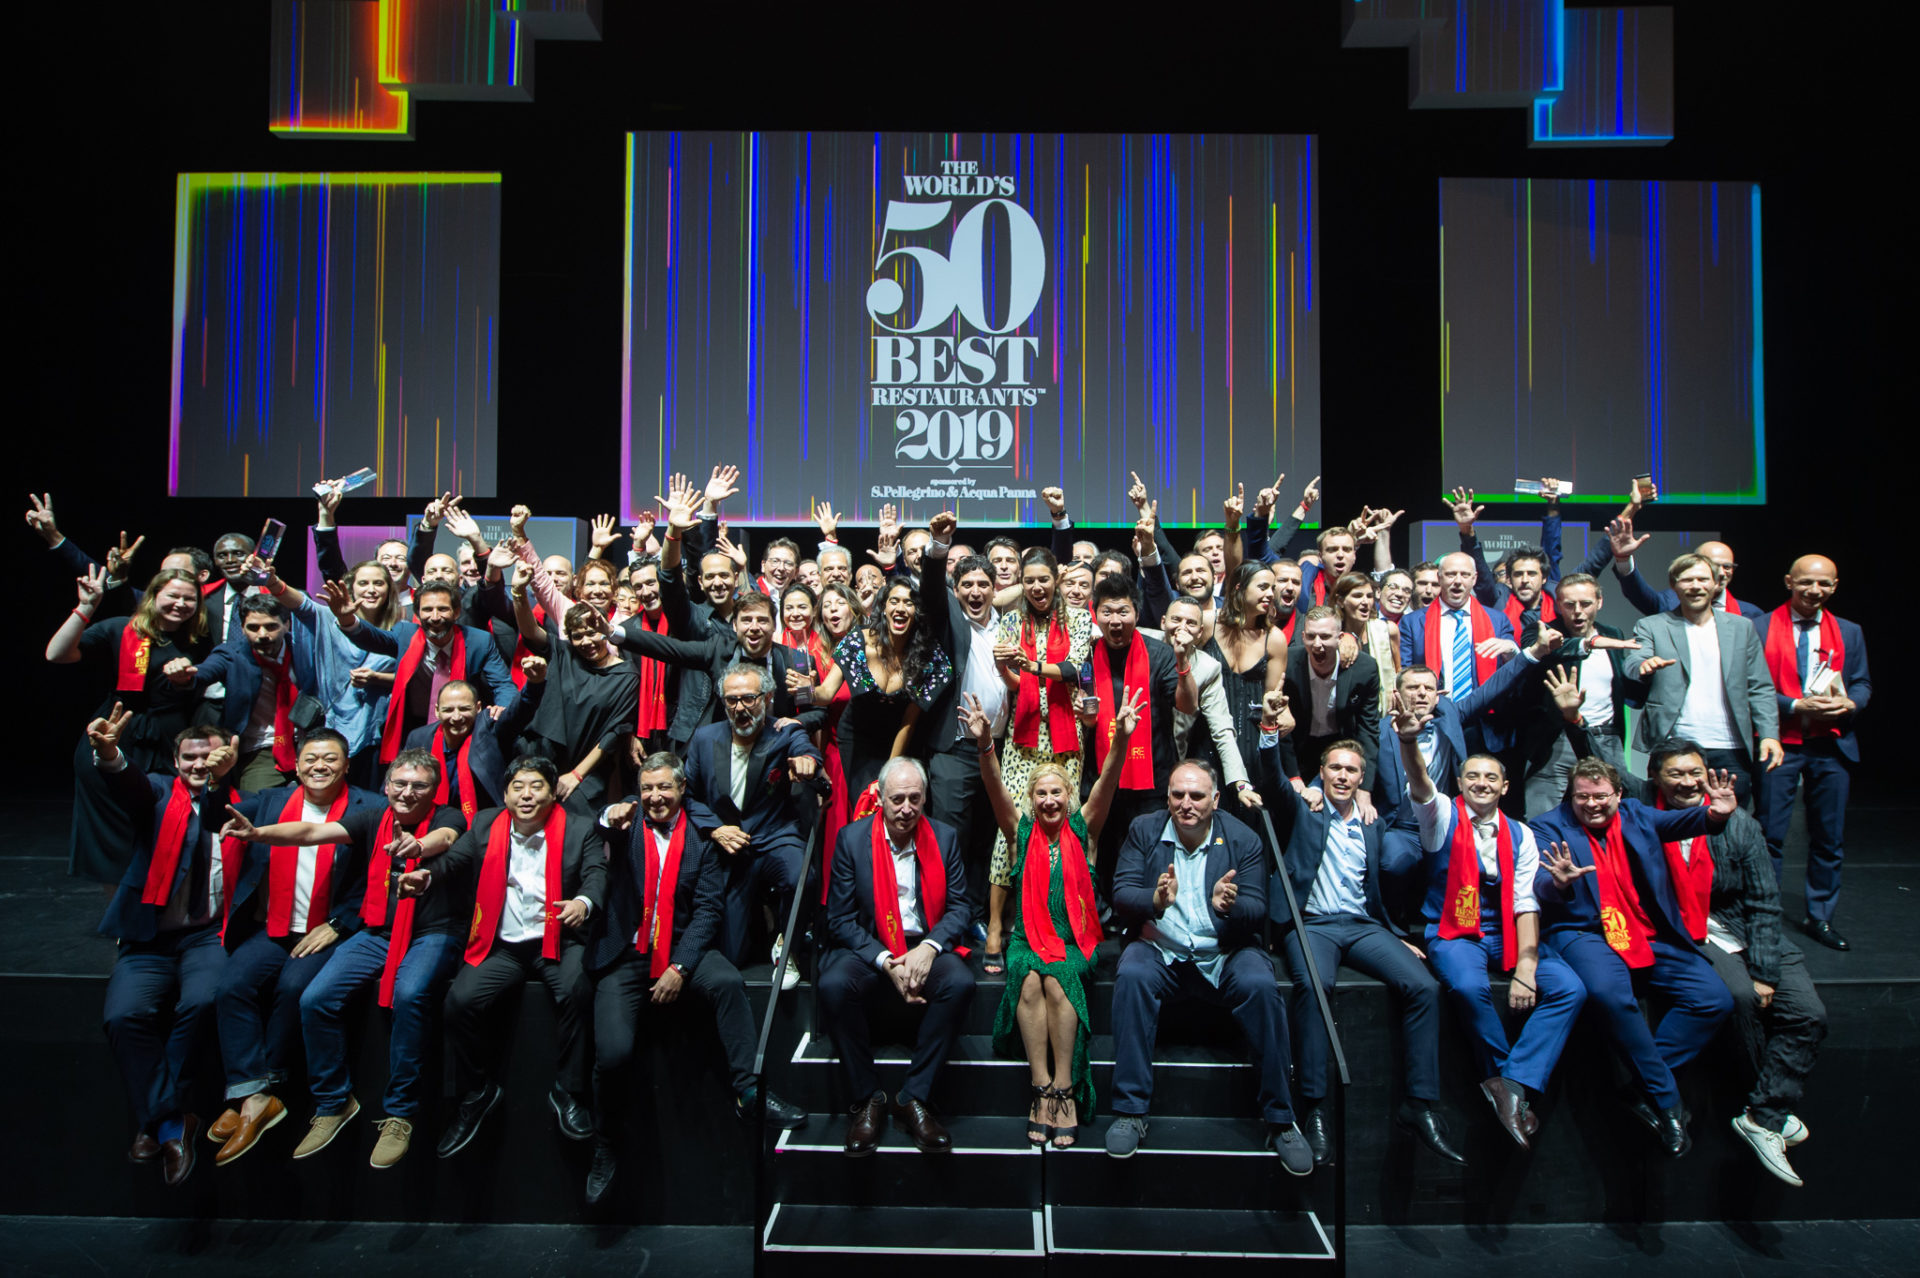 Worlds Best Restaurants 2019 The World's 50 Best Restaurants 2019: The Chairman debuts at No